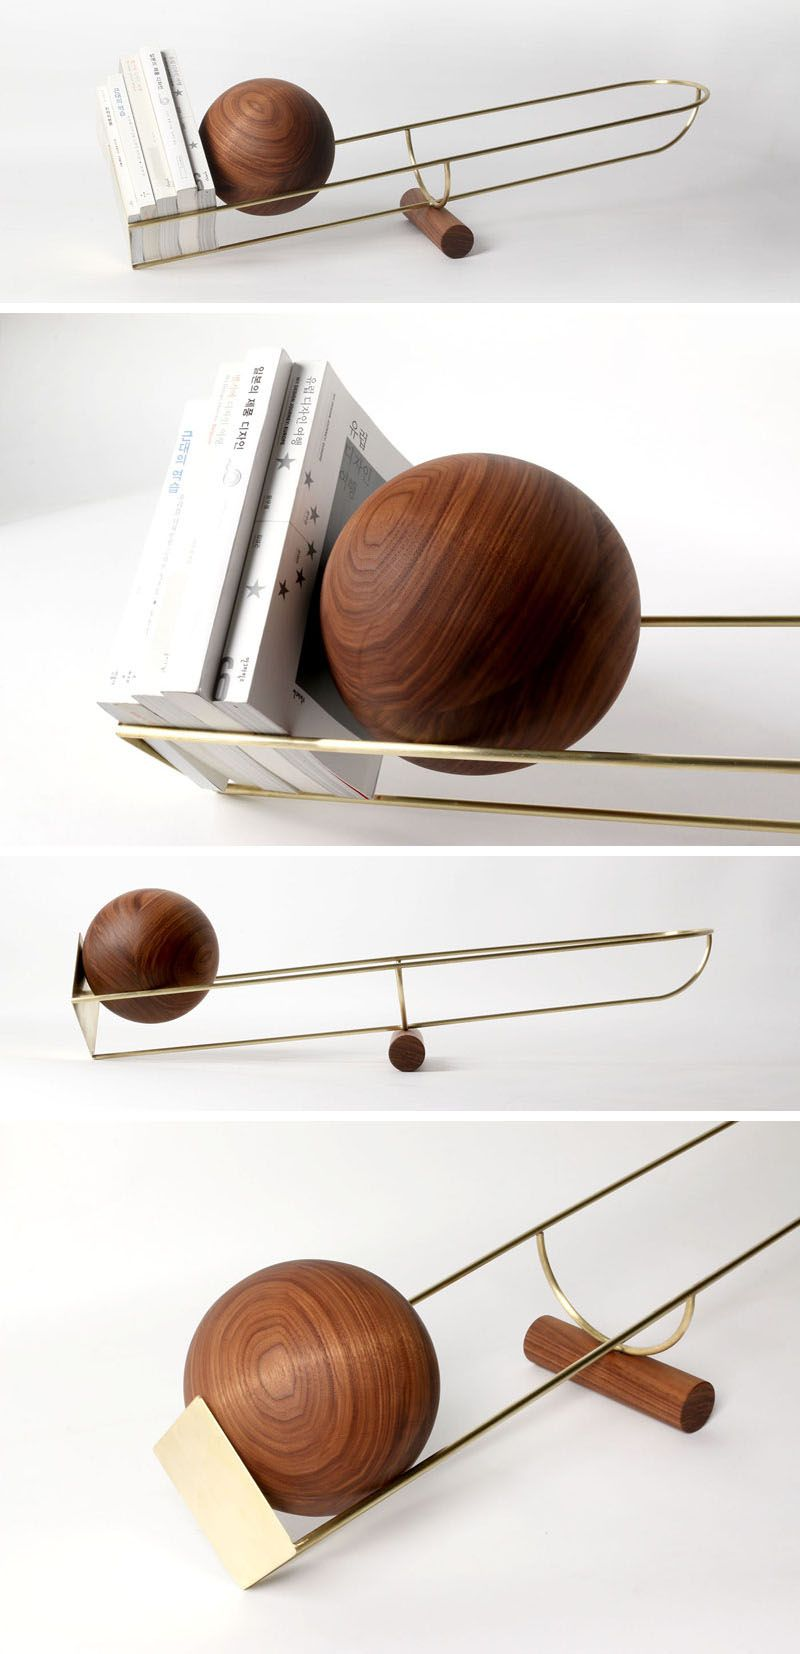 This Simple And Unique Bookshelf Is Designed Like A See Saw, With A Wooden